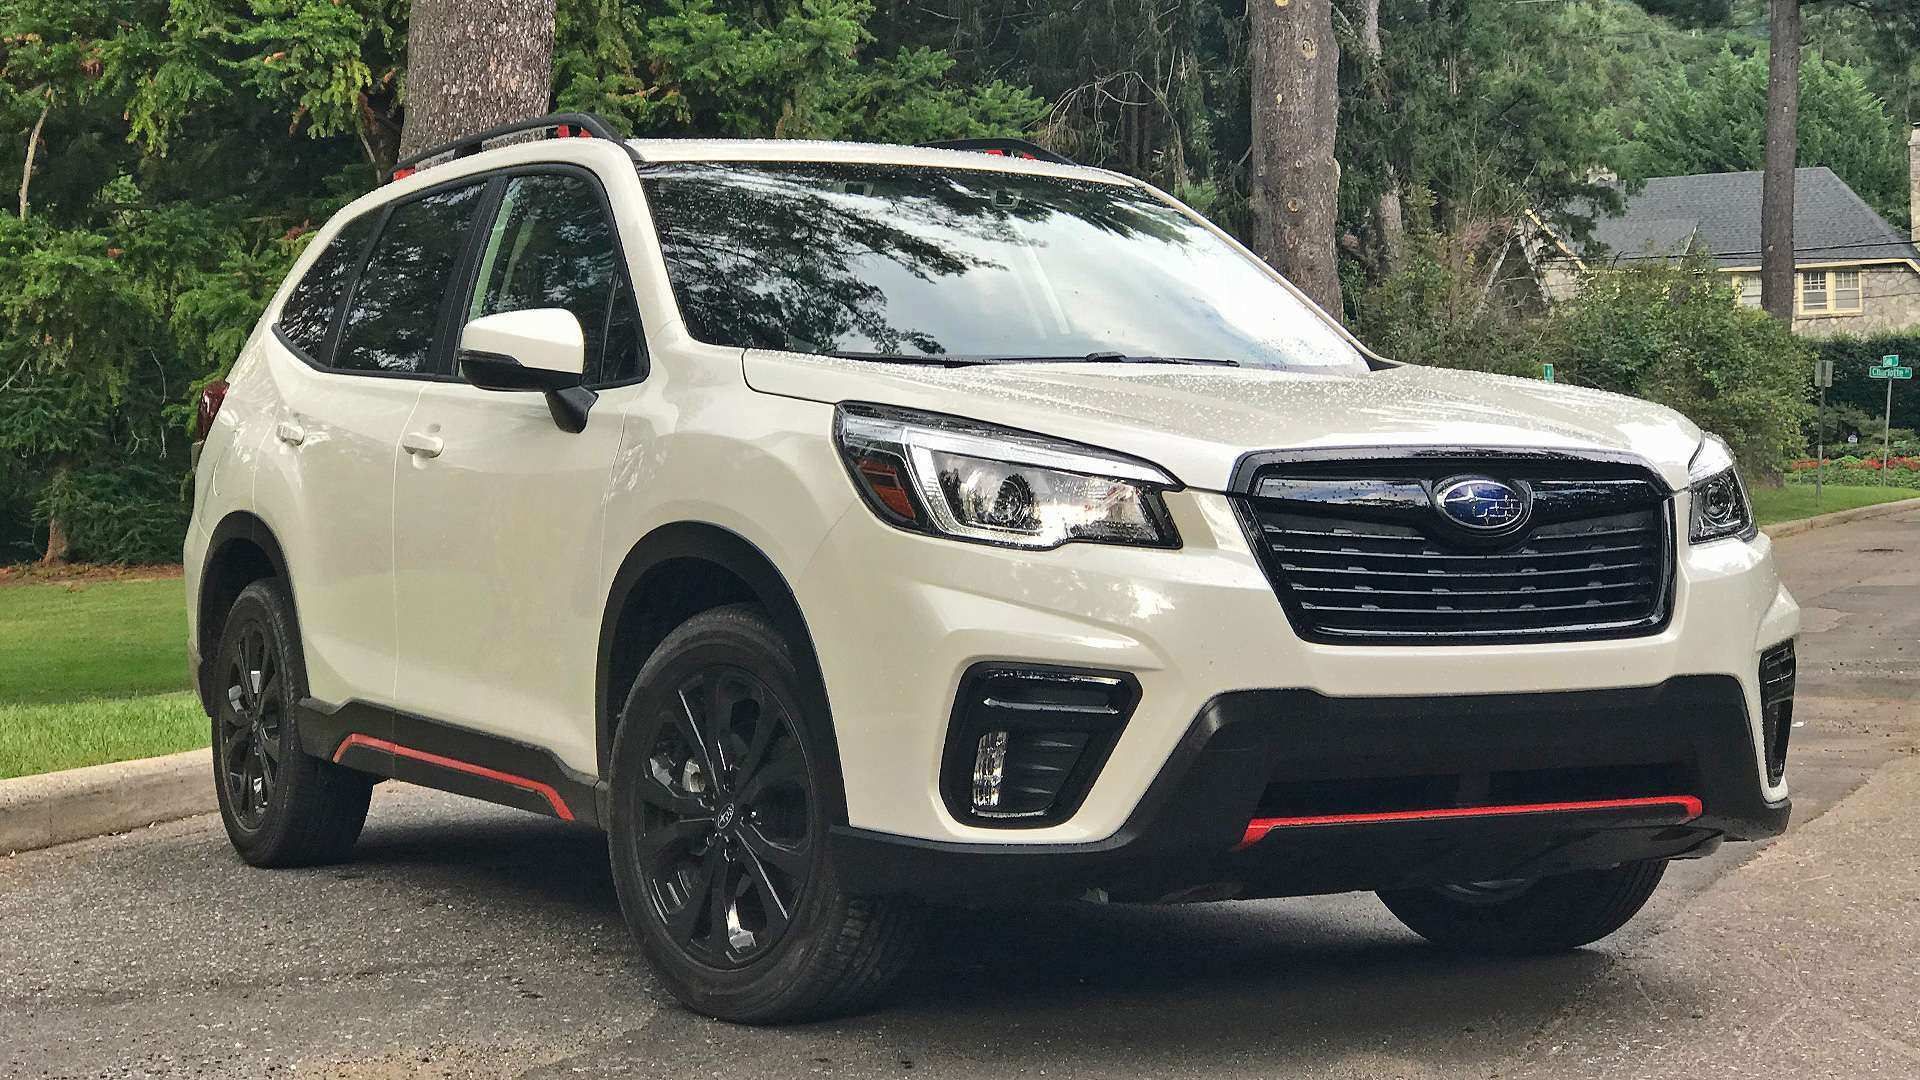 50 Concept of The 2019 Subaru Forester Price and Review for The 2019 Subaru Forester